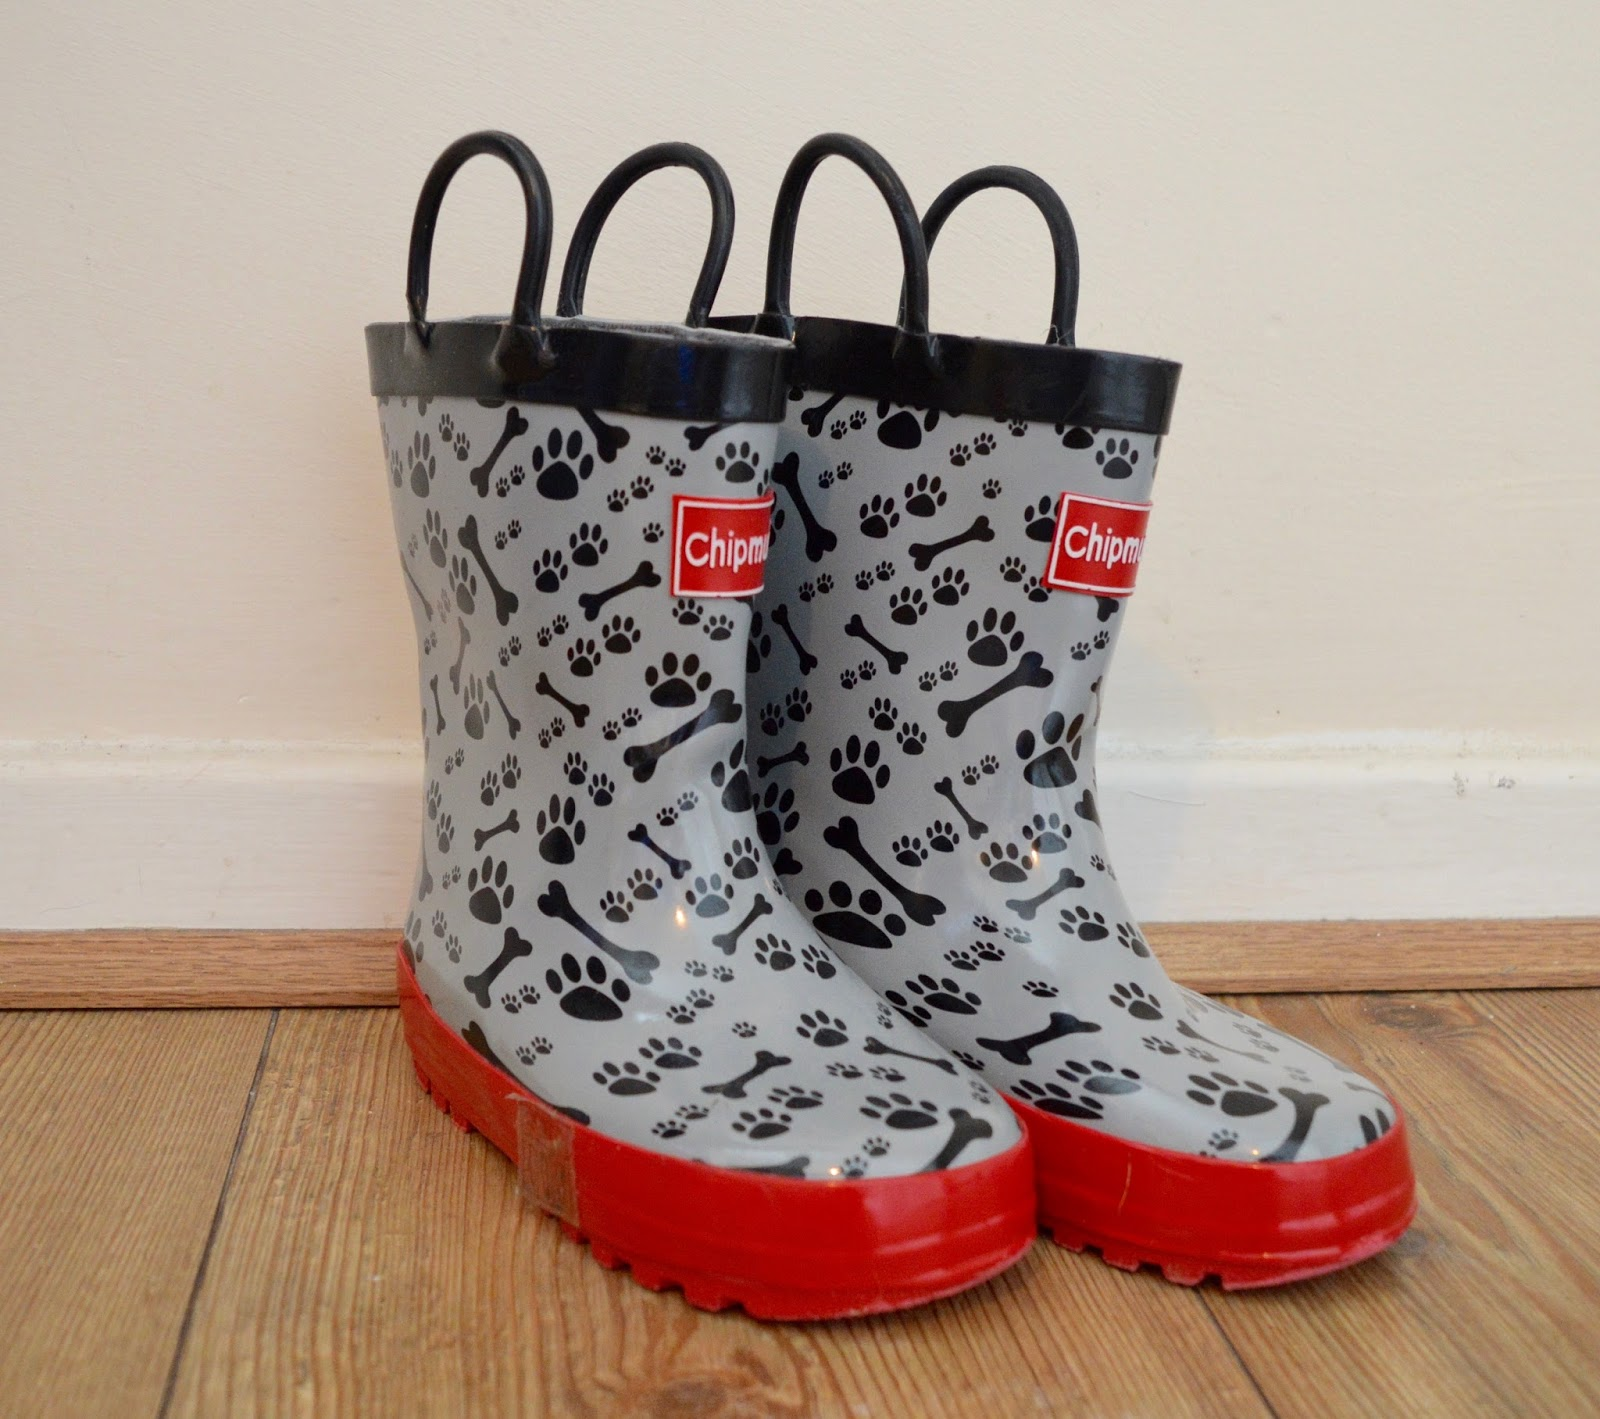 Top Tips and handy advice for surviving the school run - wellies